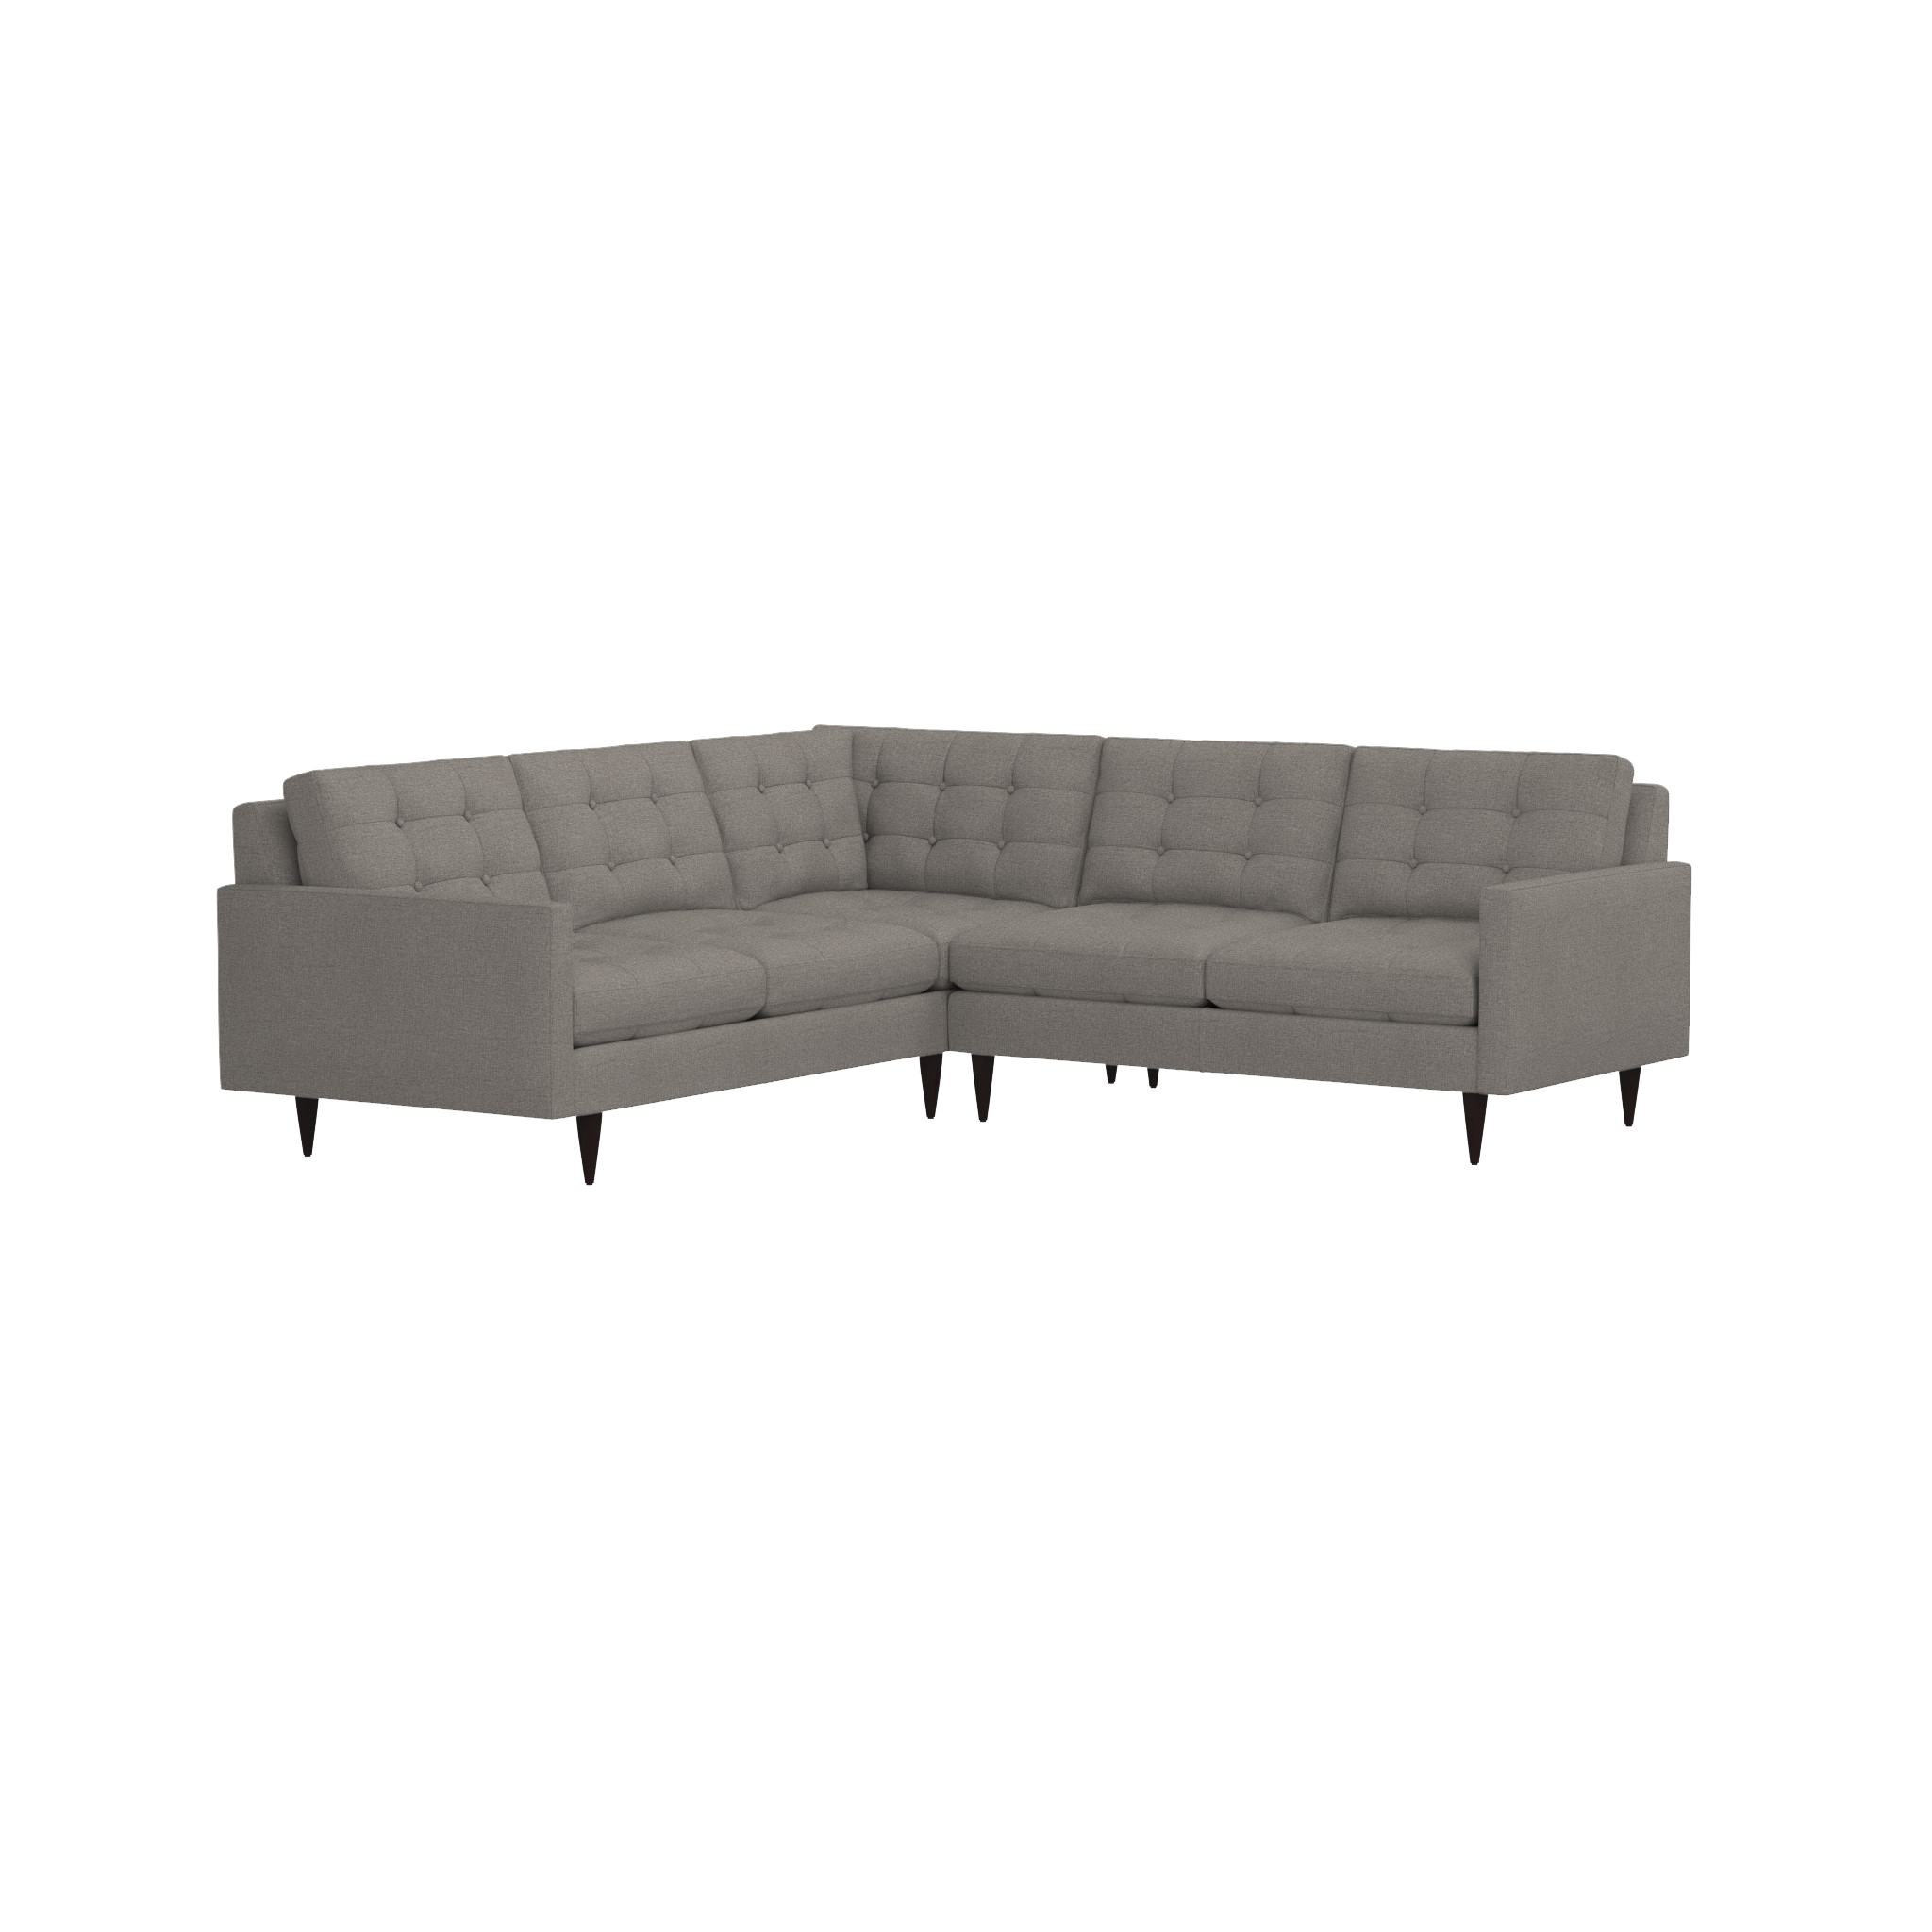 Petrie 2 Piece Corner Sectional Sofa | Crate And Barrel With Regard To Sectional Crate And Barrel (Image 15 of 20)